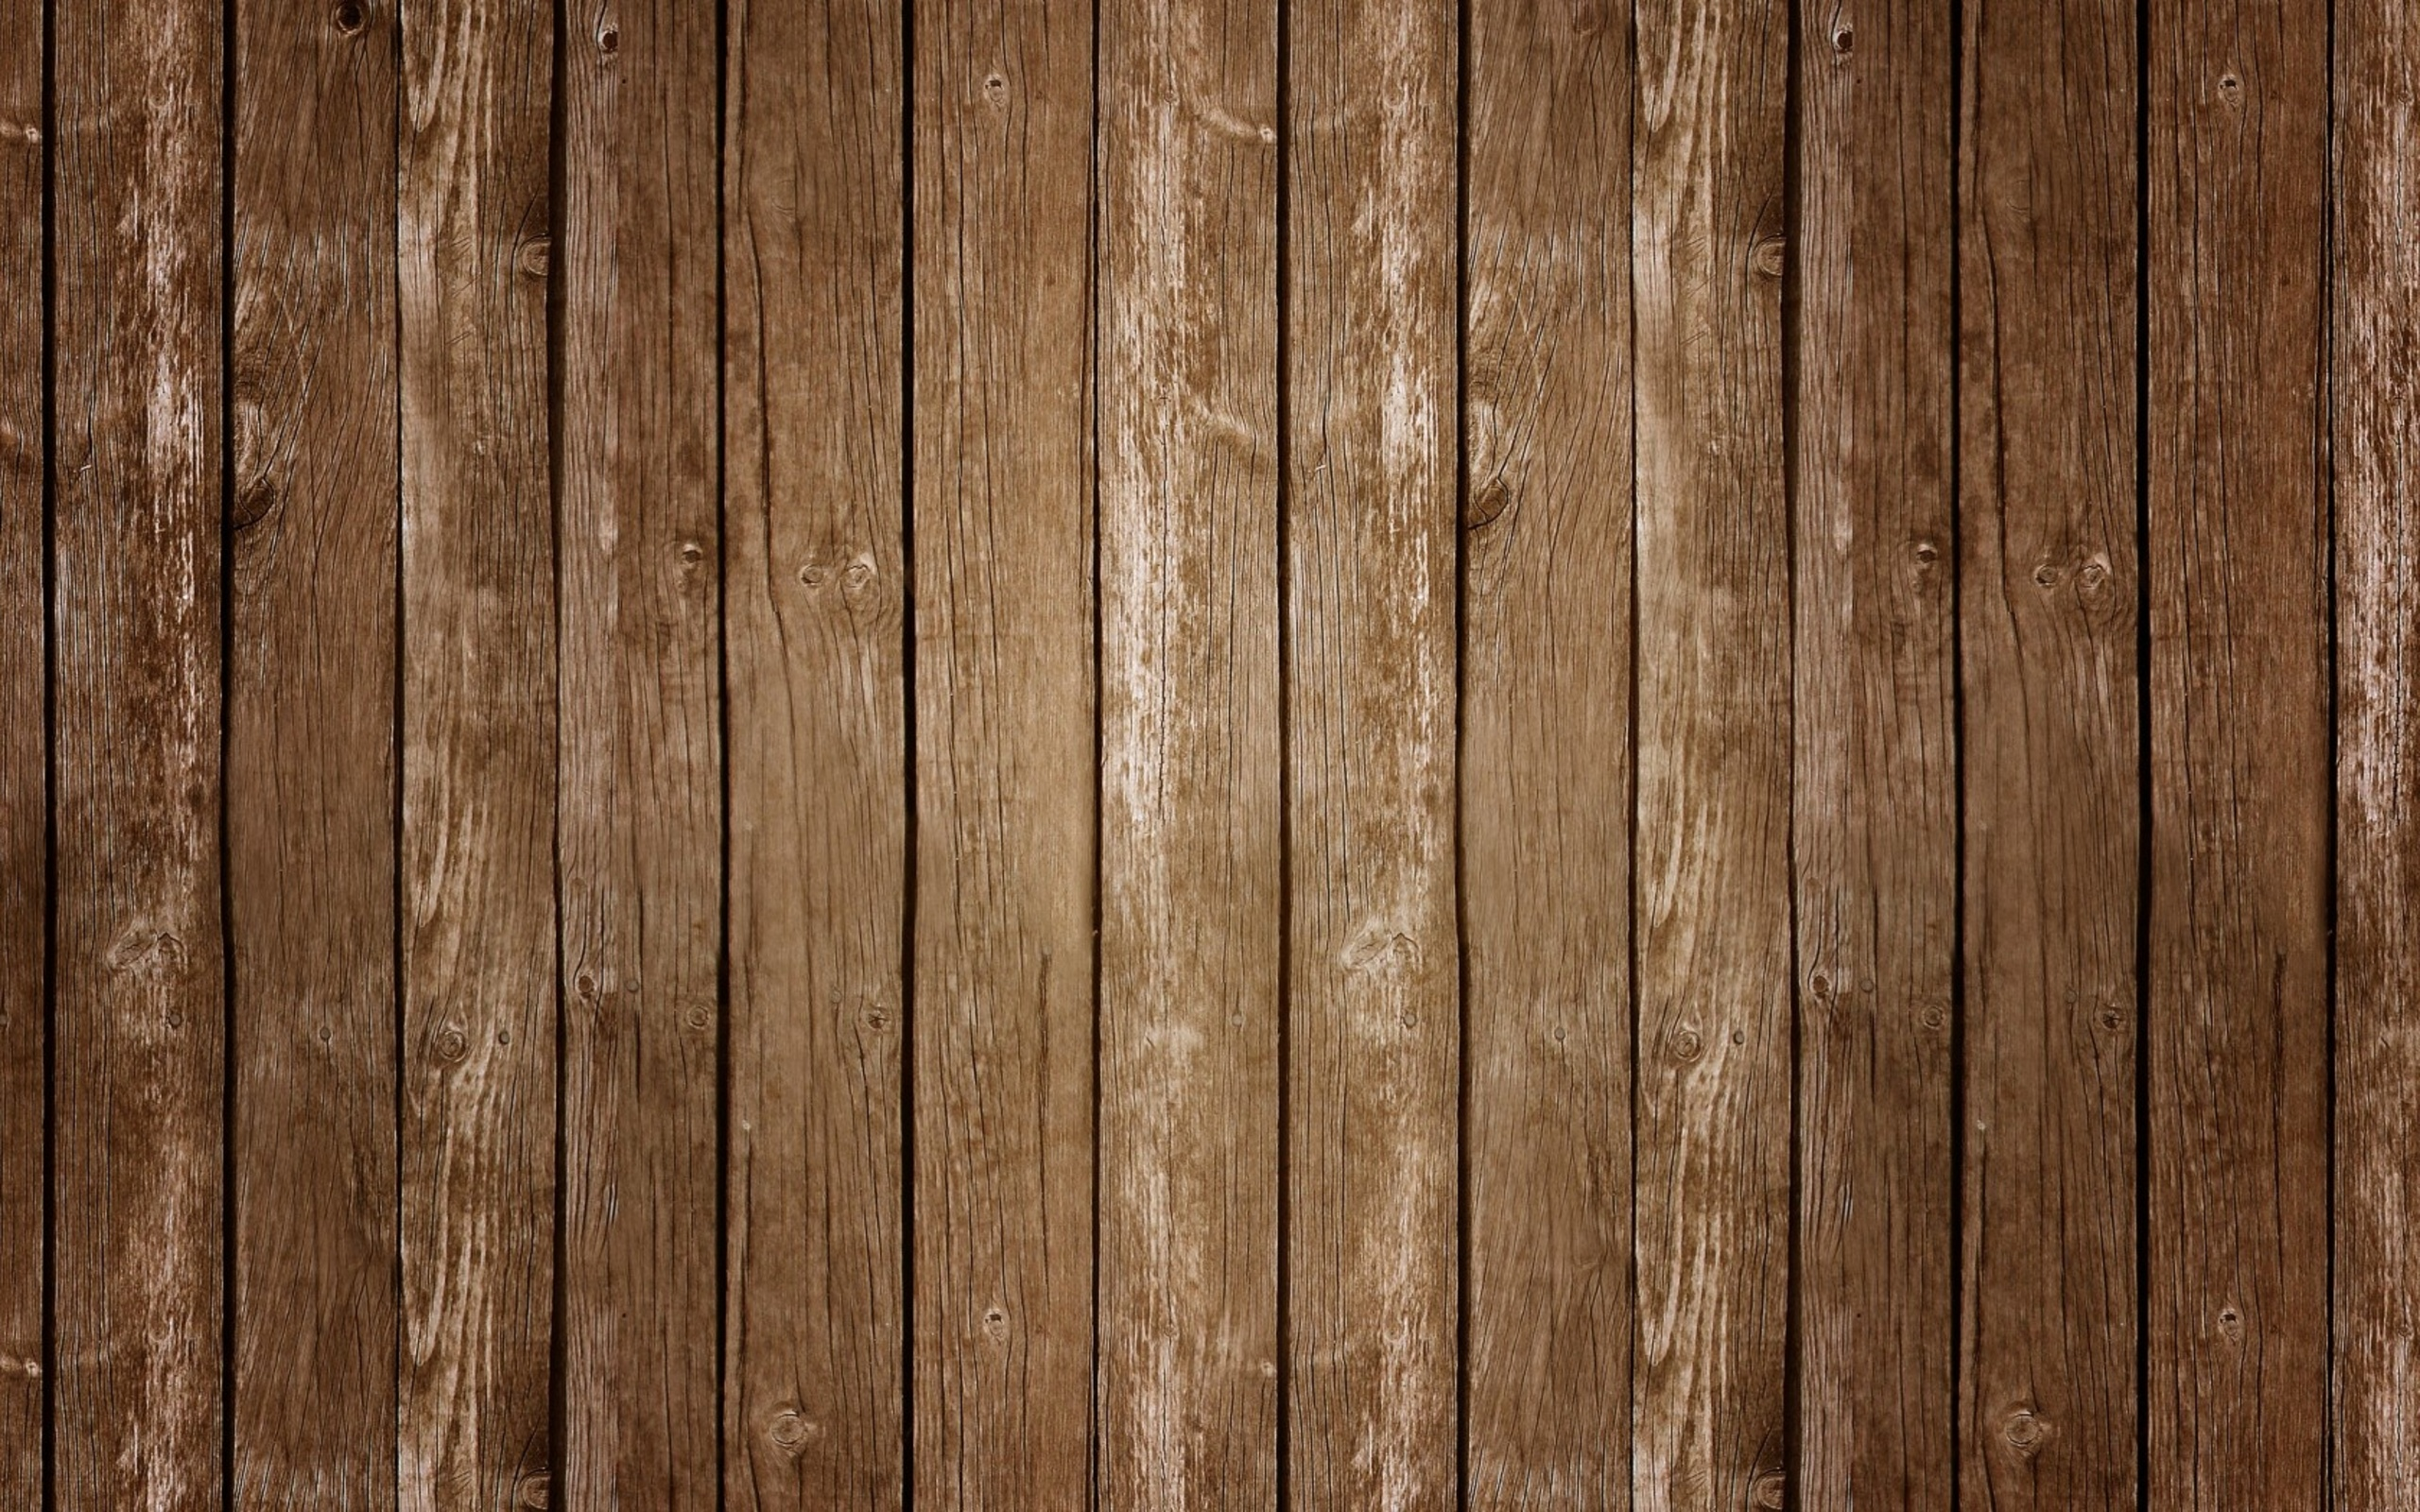 Nate Barlow Wallpapers Wooden Background Large wooden background